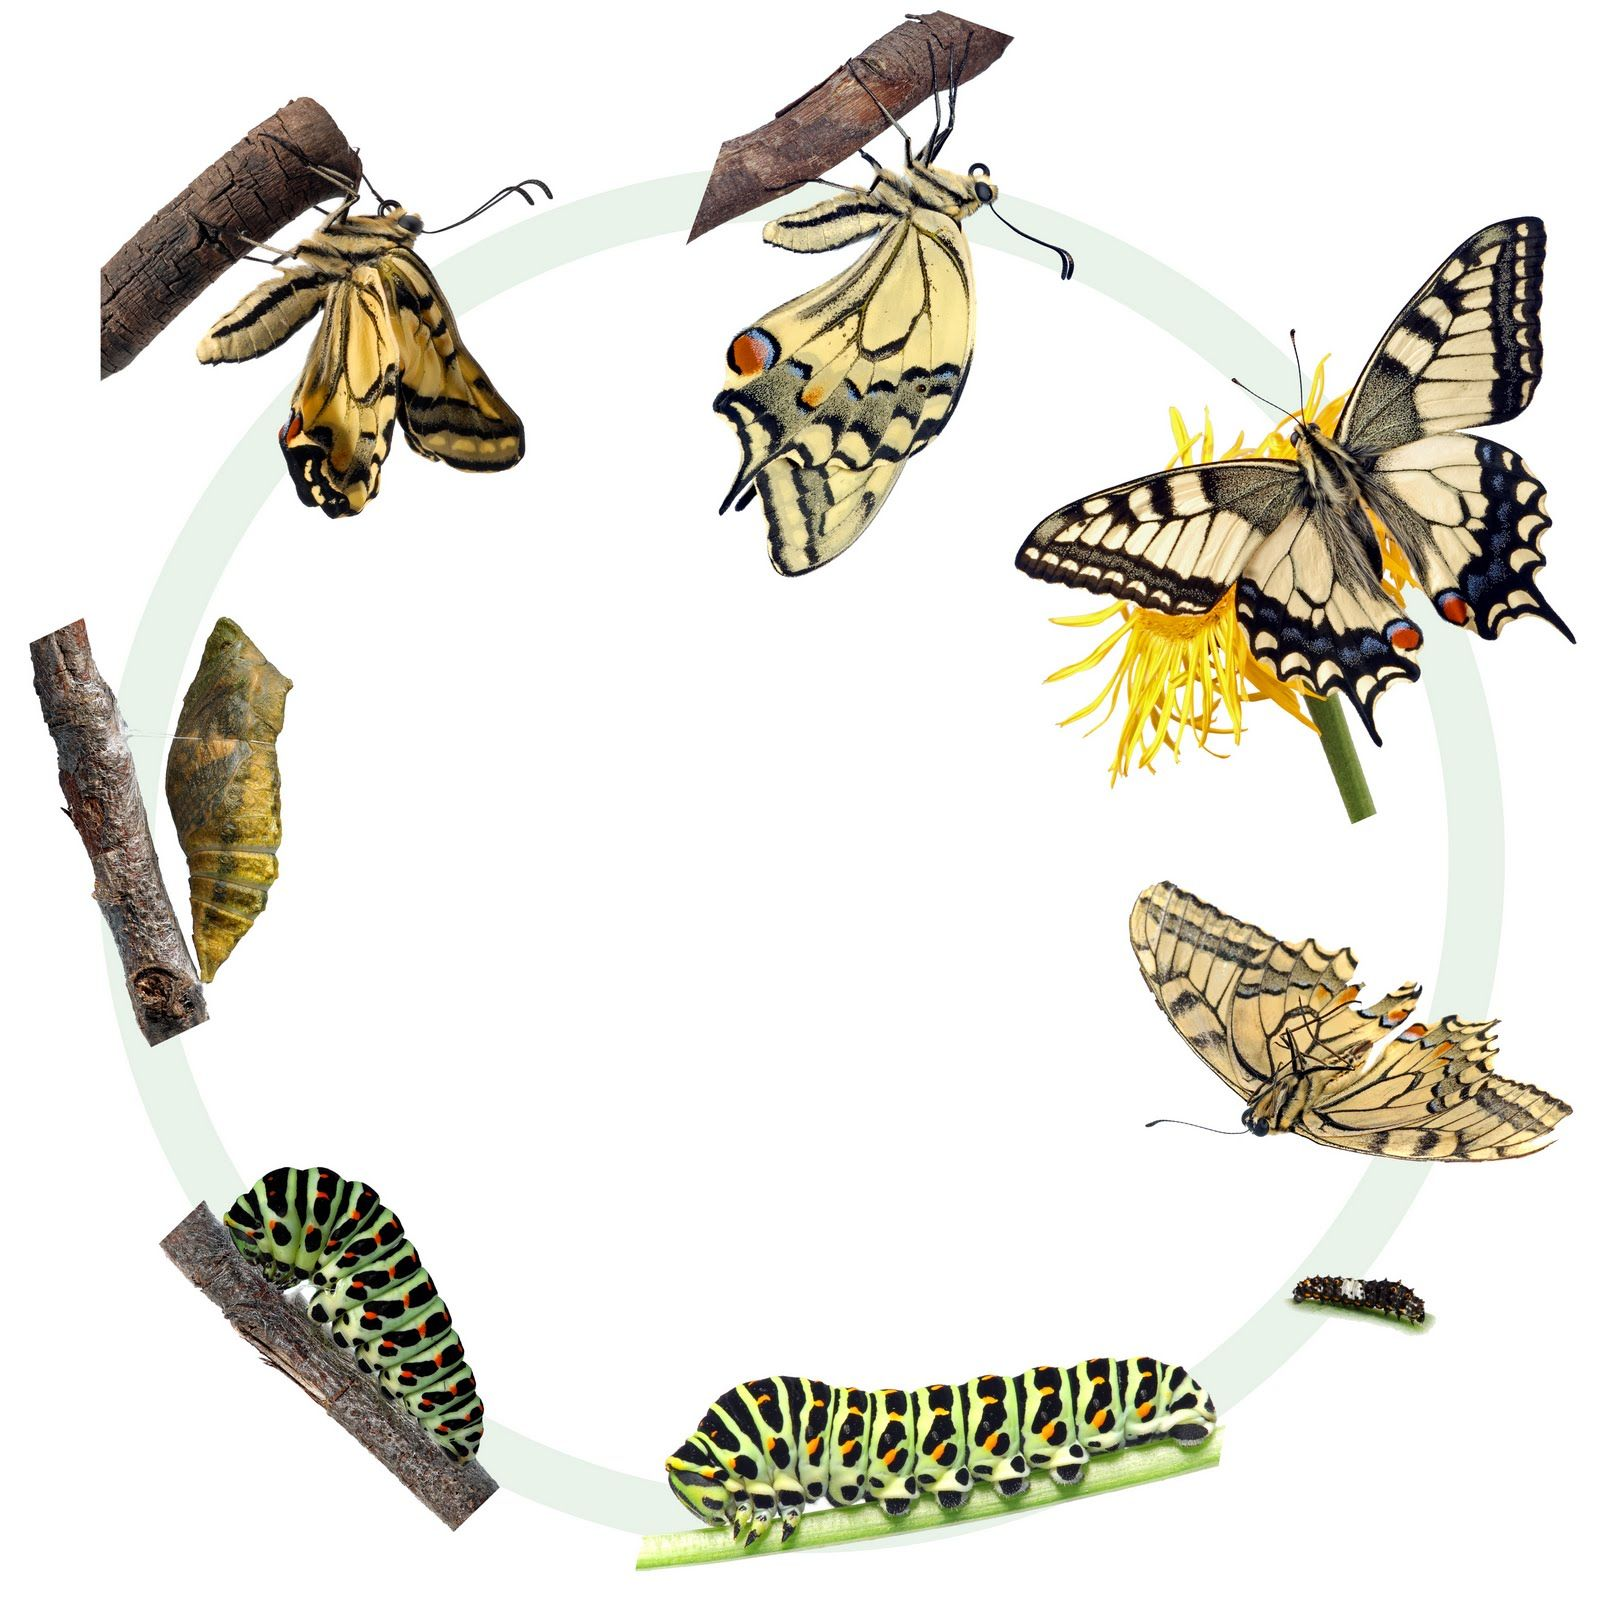 Characteristic Growth and Development; Butterflies go